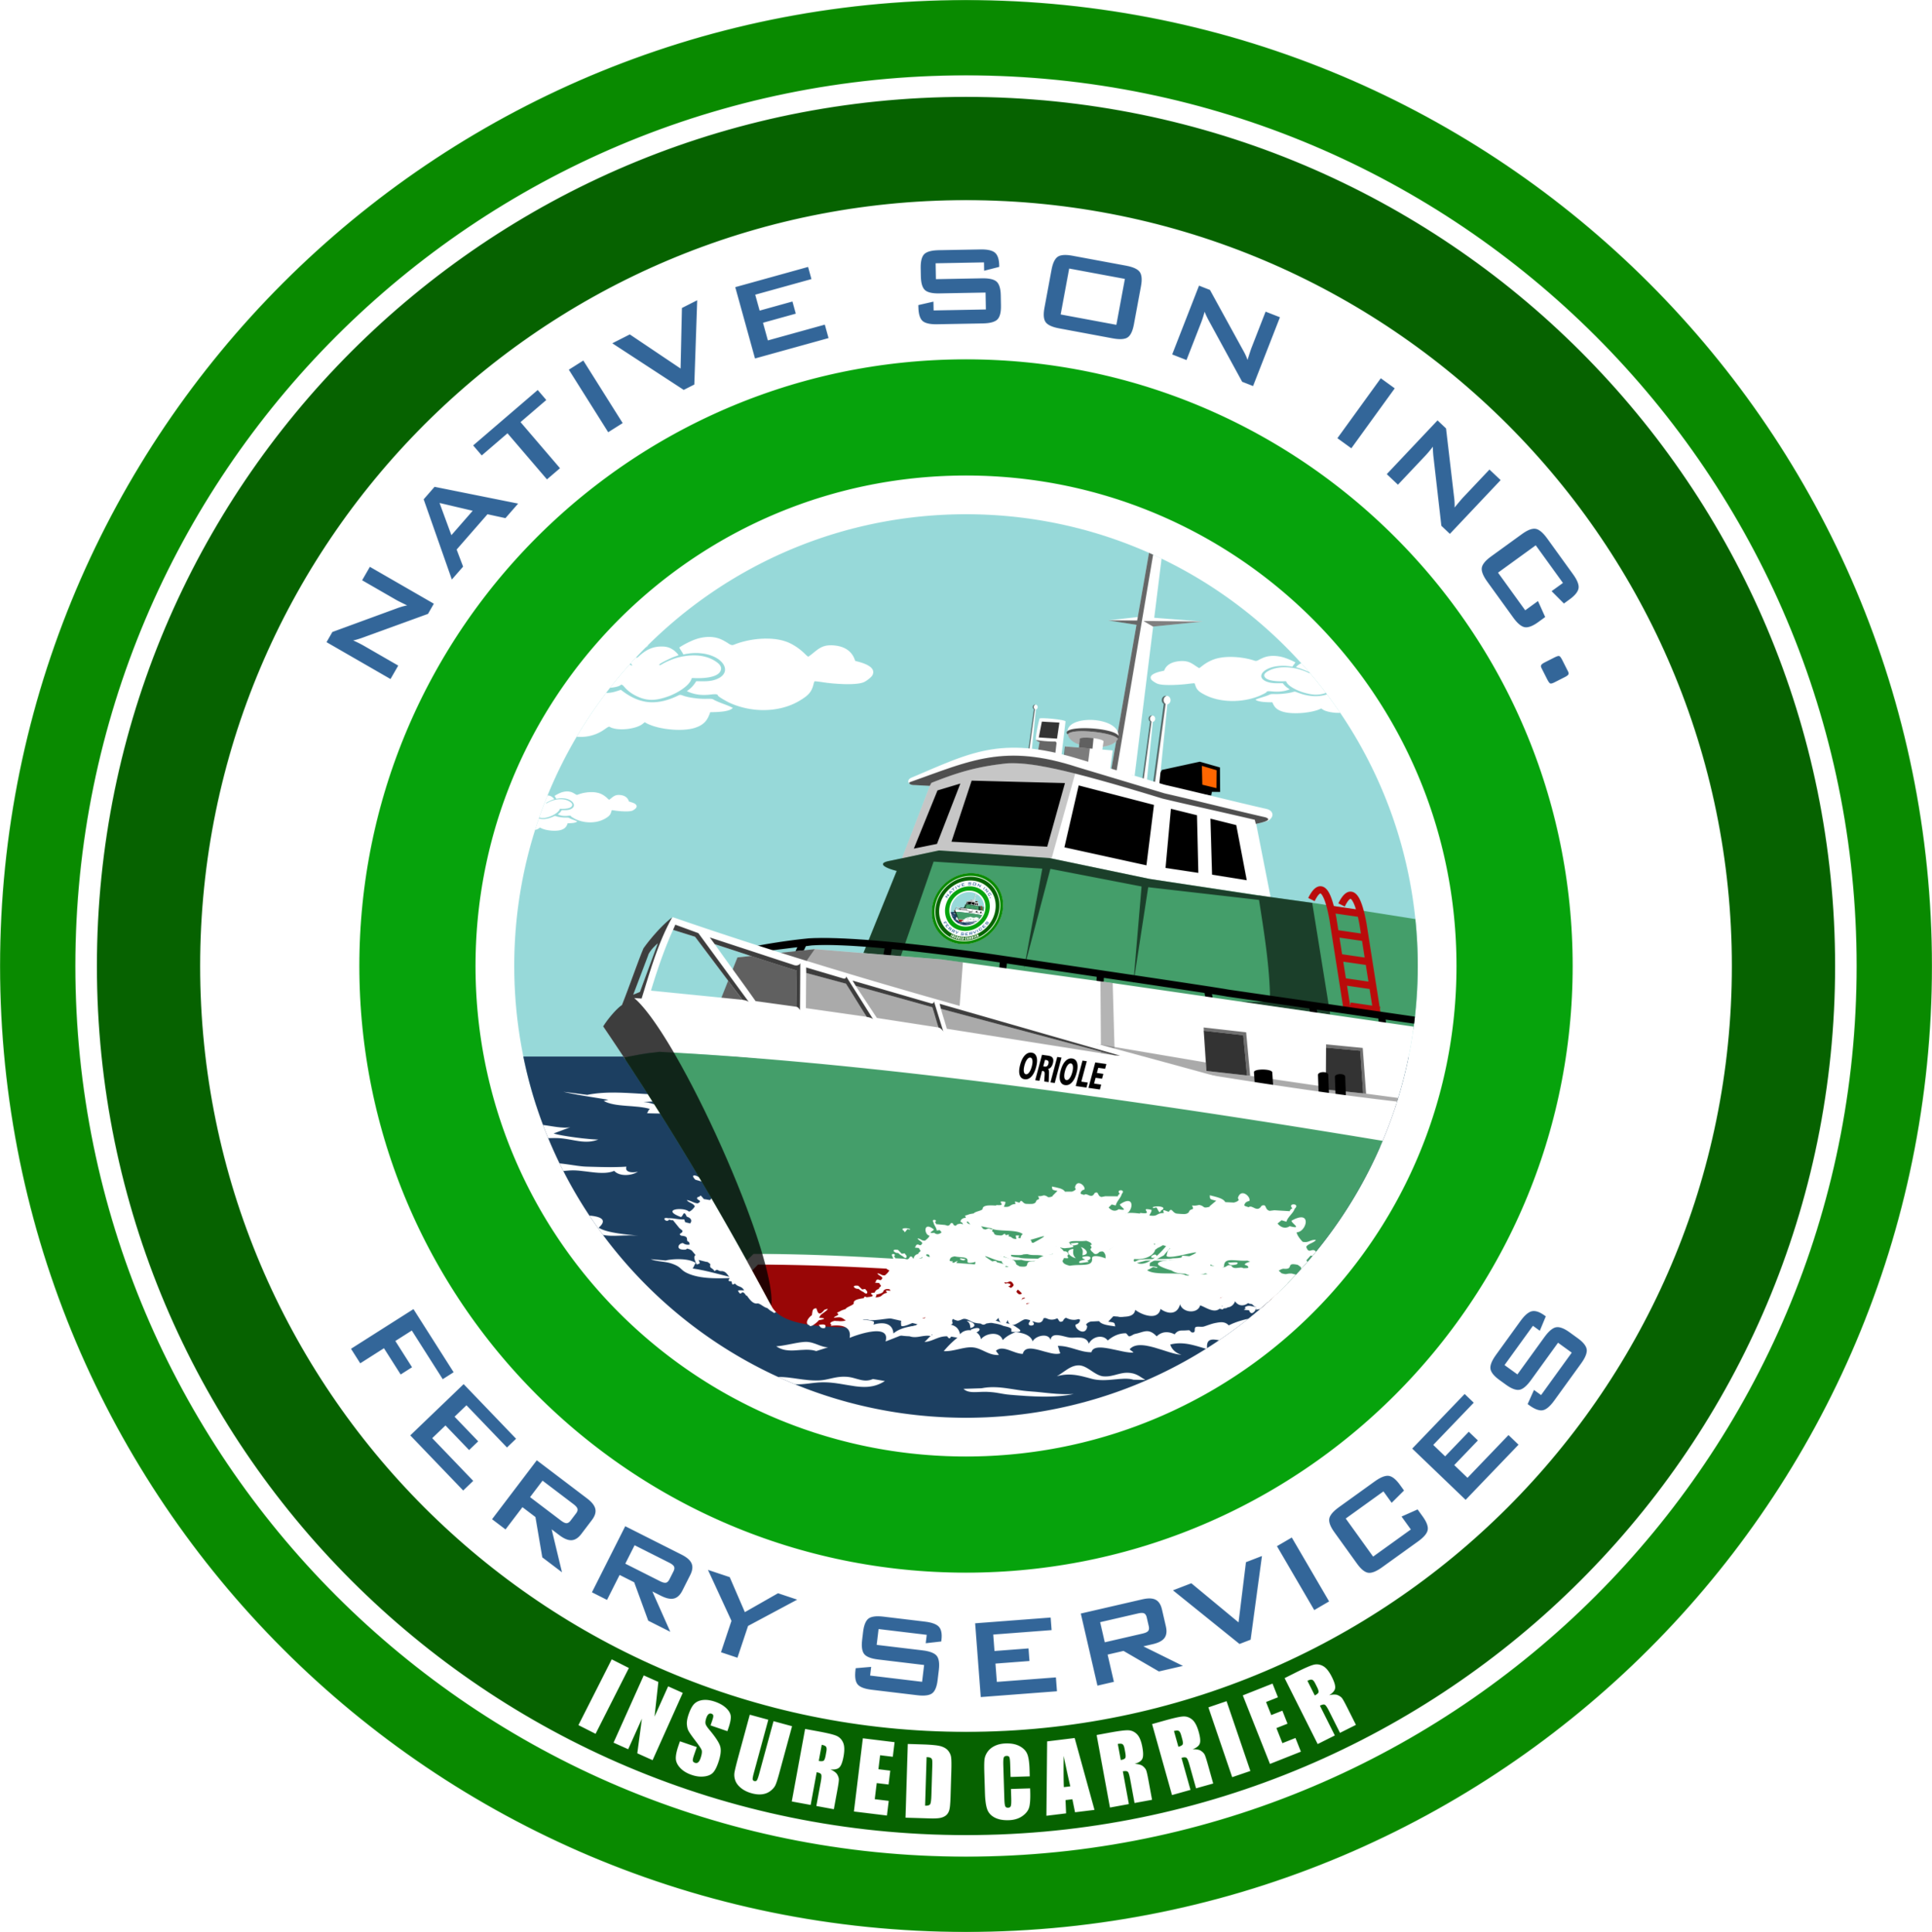 Native Son Ferry - Reliable Fast Ferry Service between the